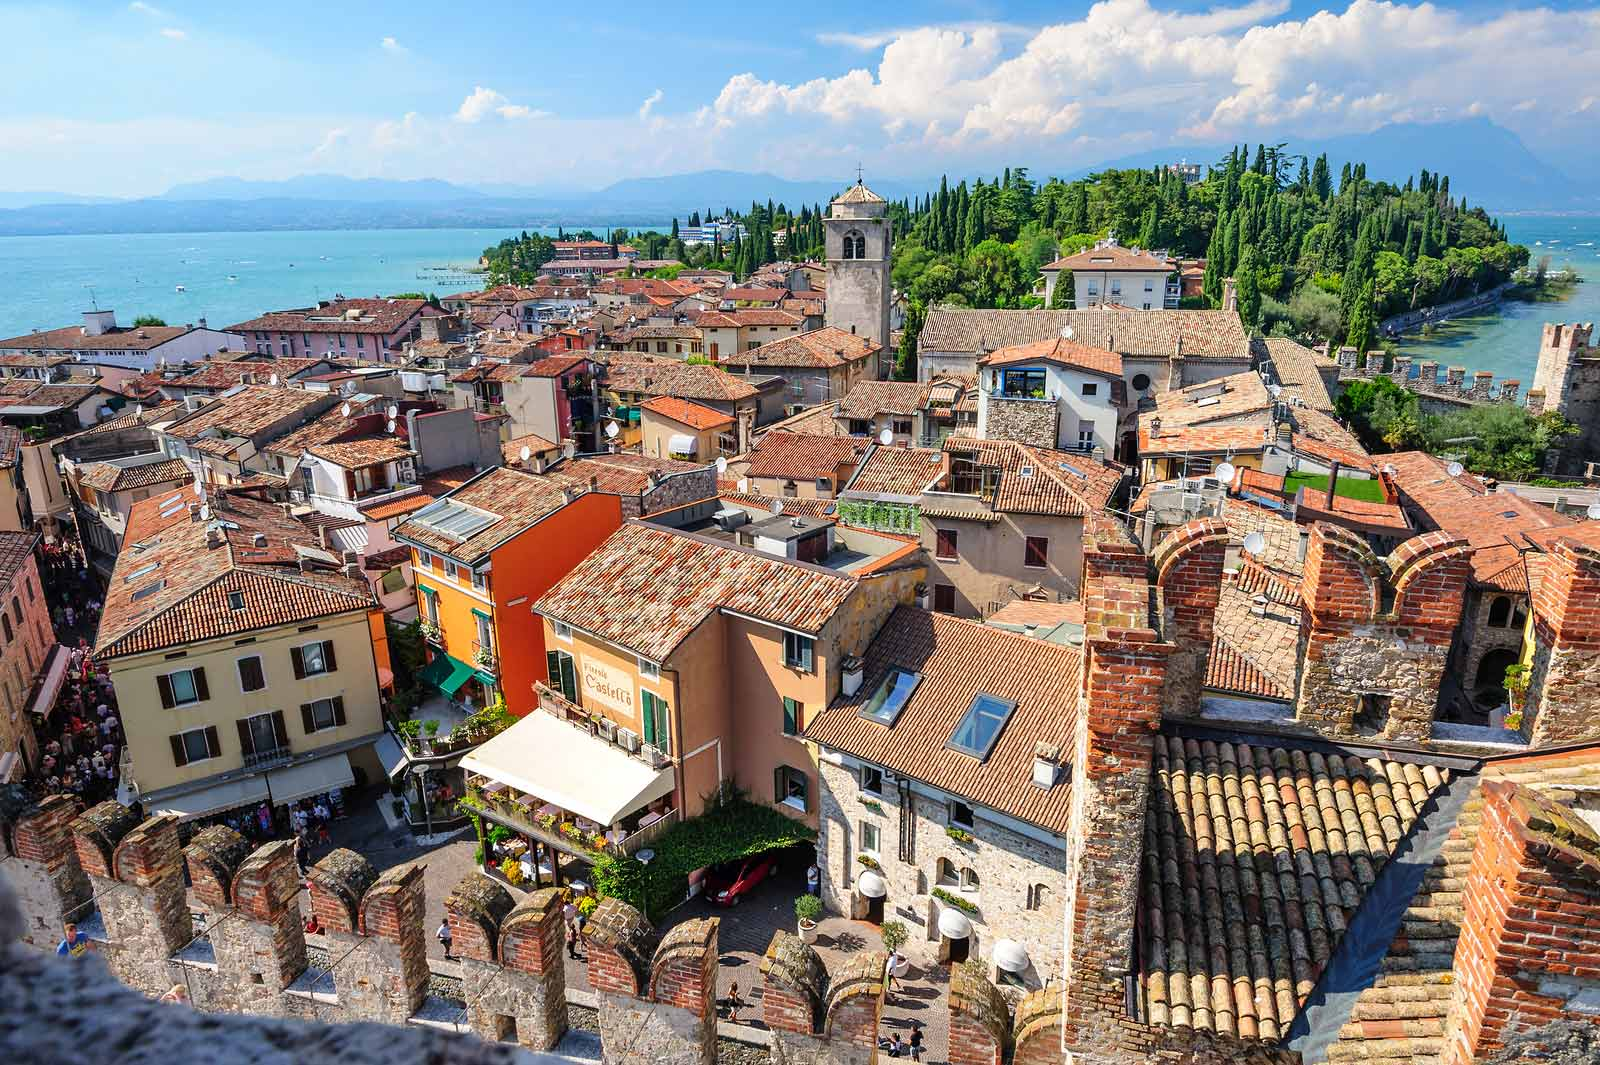 The view from the castle of Sirmione, one of the iconic towns of the Lugana DOC wine appellation on the shores of Lake Garda.